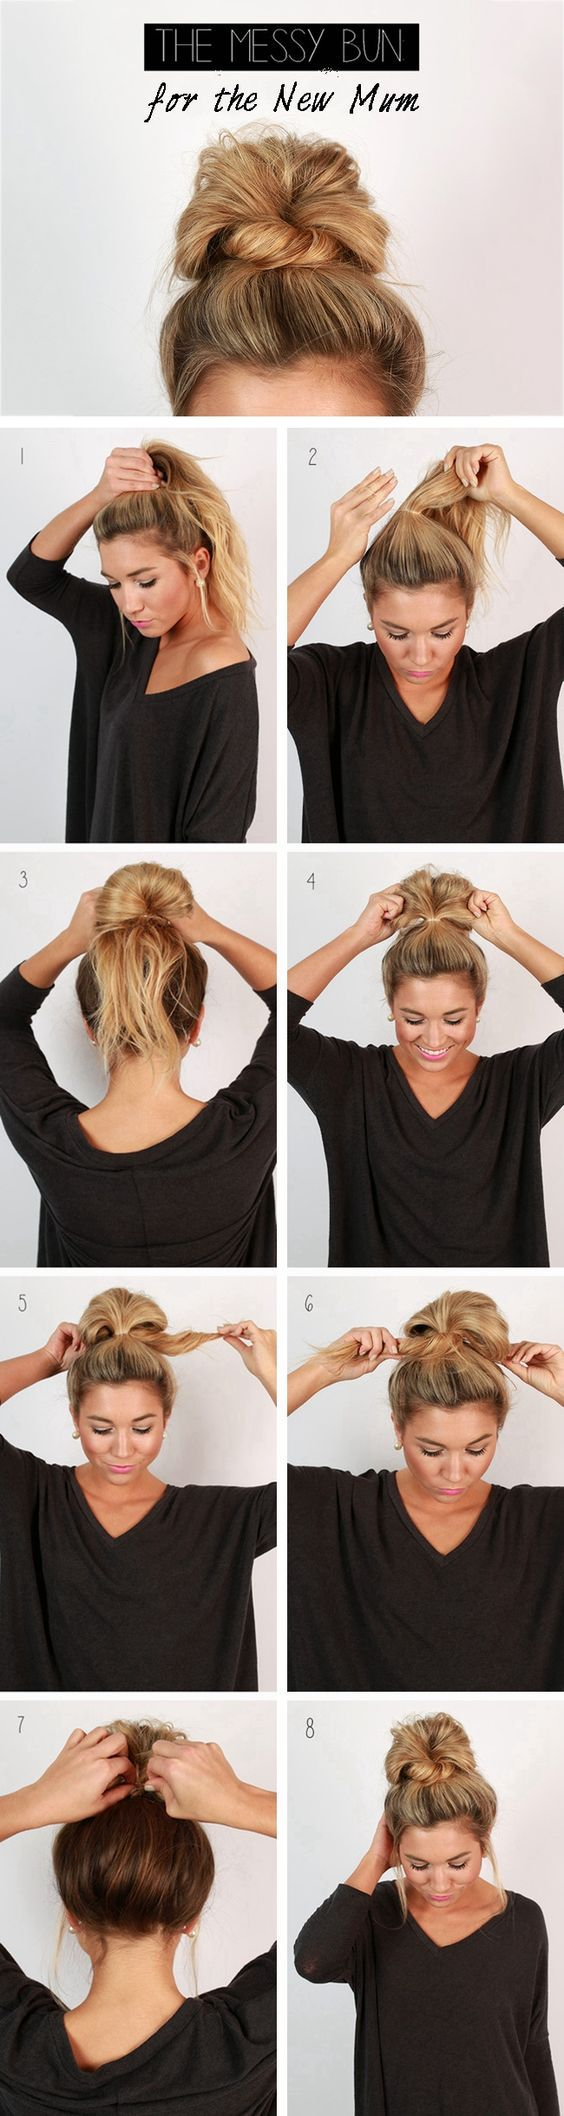 best 25+ gym hairstyles ideas on pinterest | braided ponytail